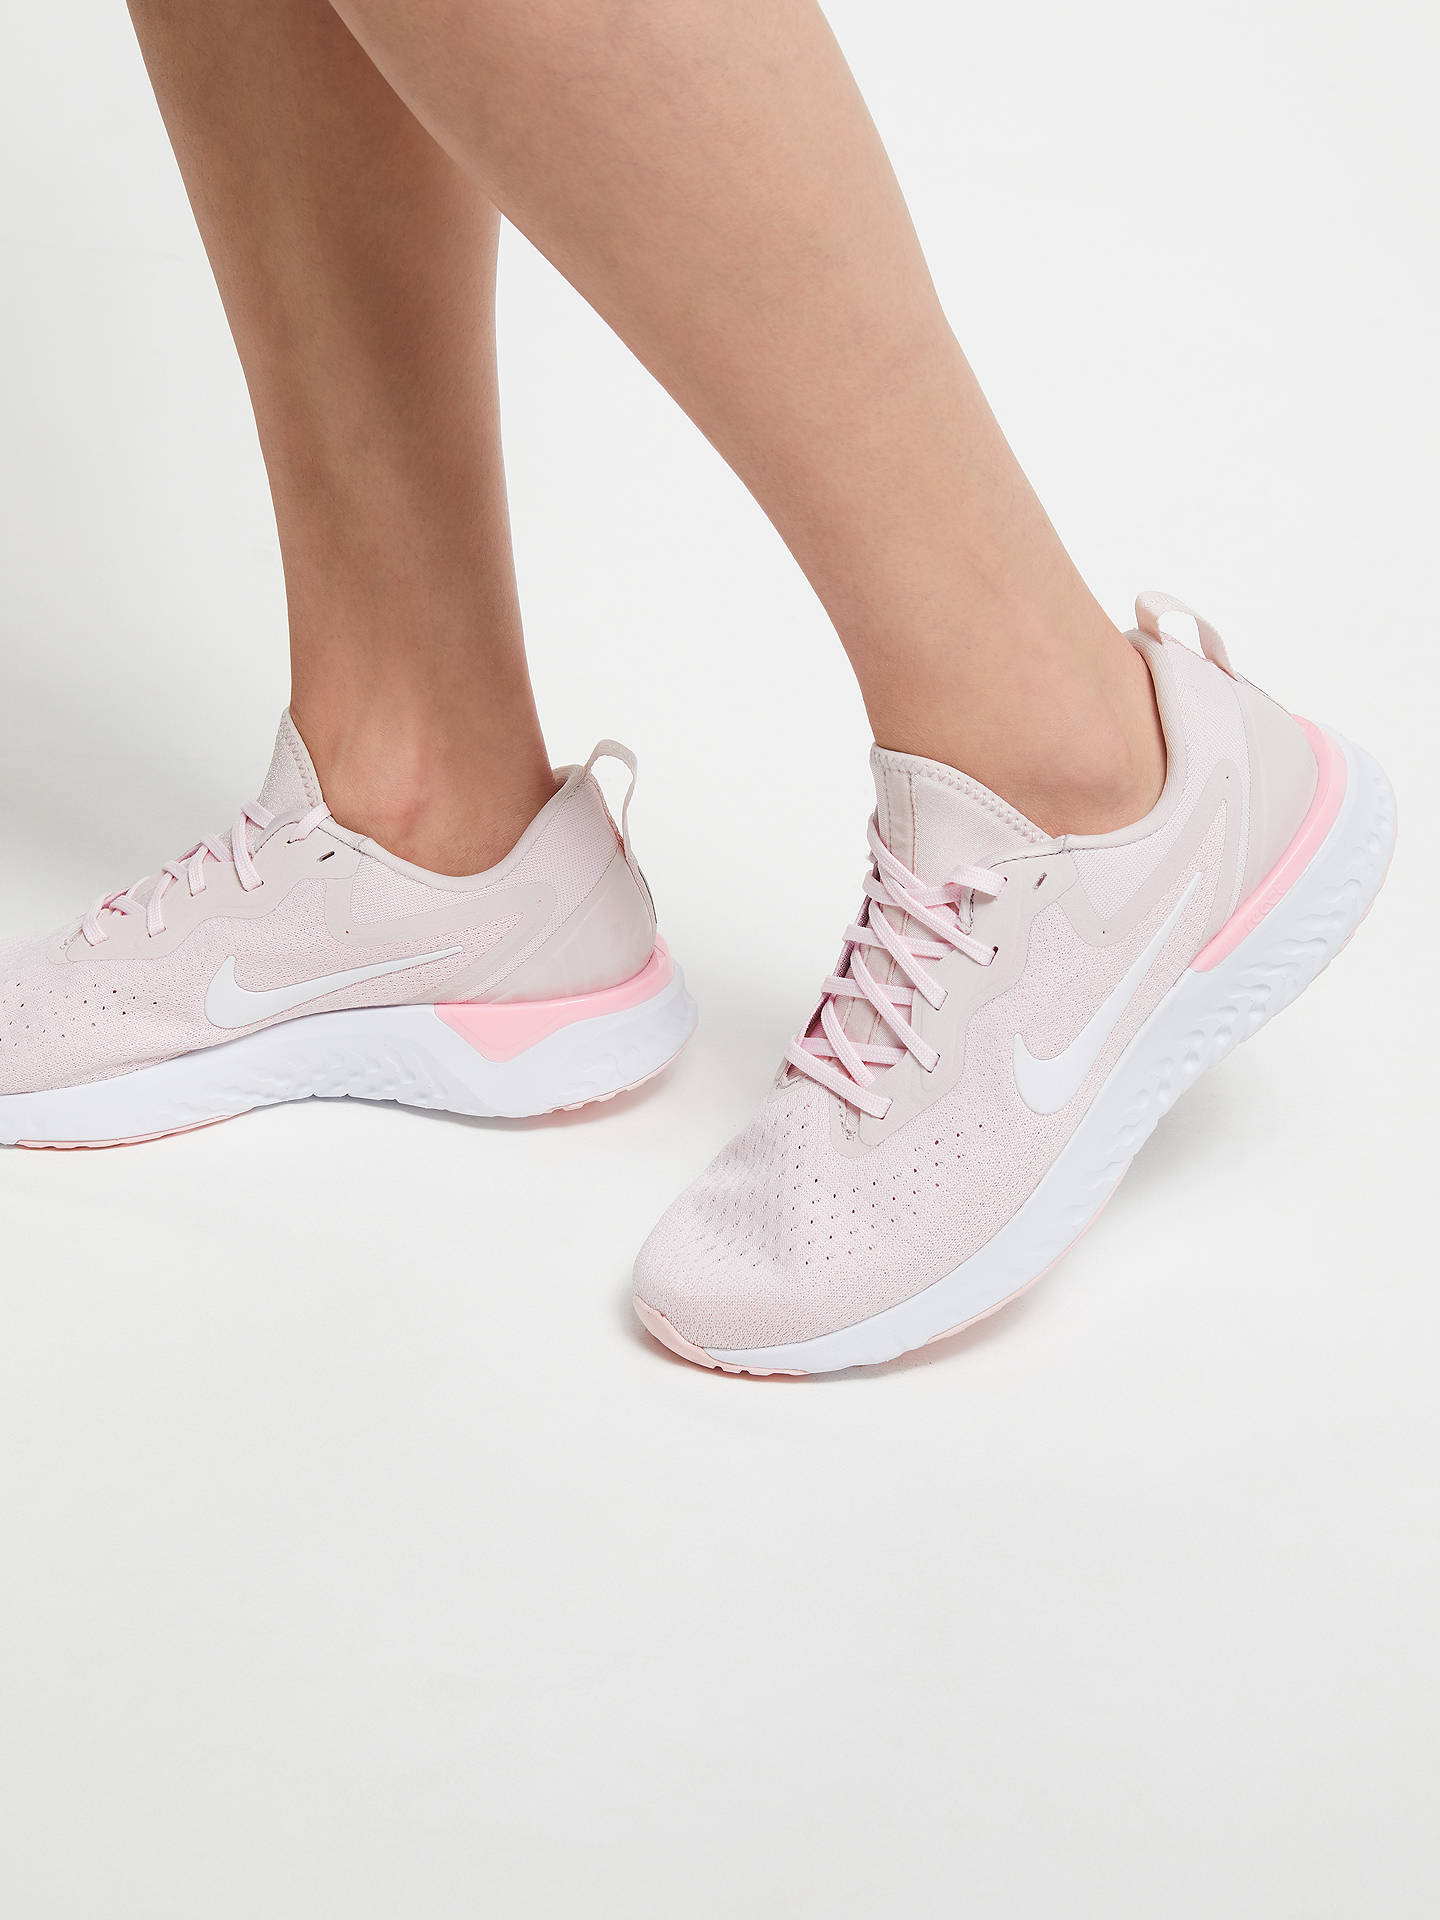 finest selection 368e7 d2f91 ... Buy Nike Odyssey React Womens Running Shoe, Arctic PinkWhite, 4  Online at ...